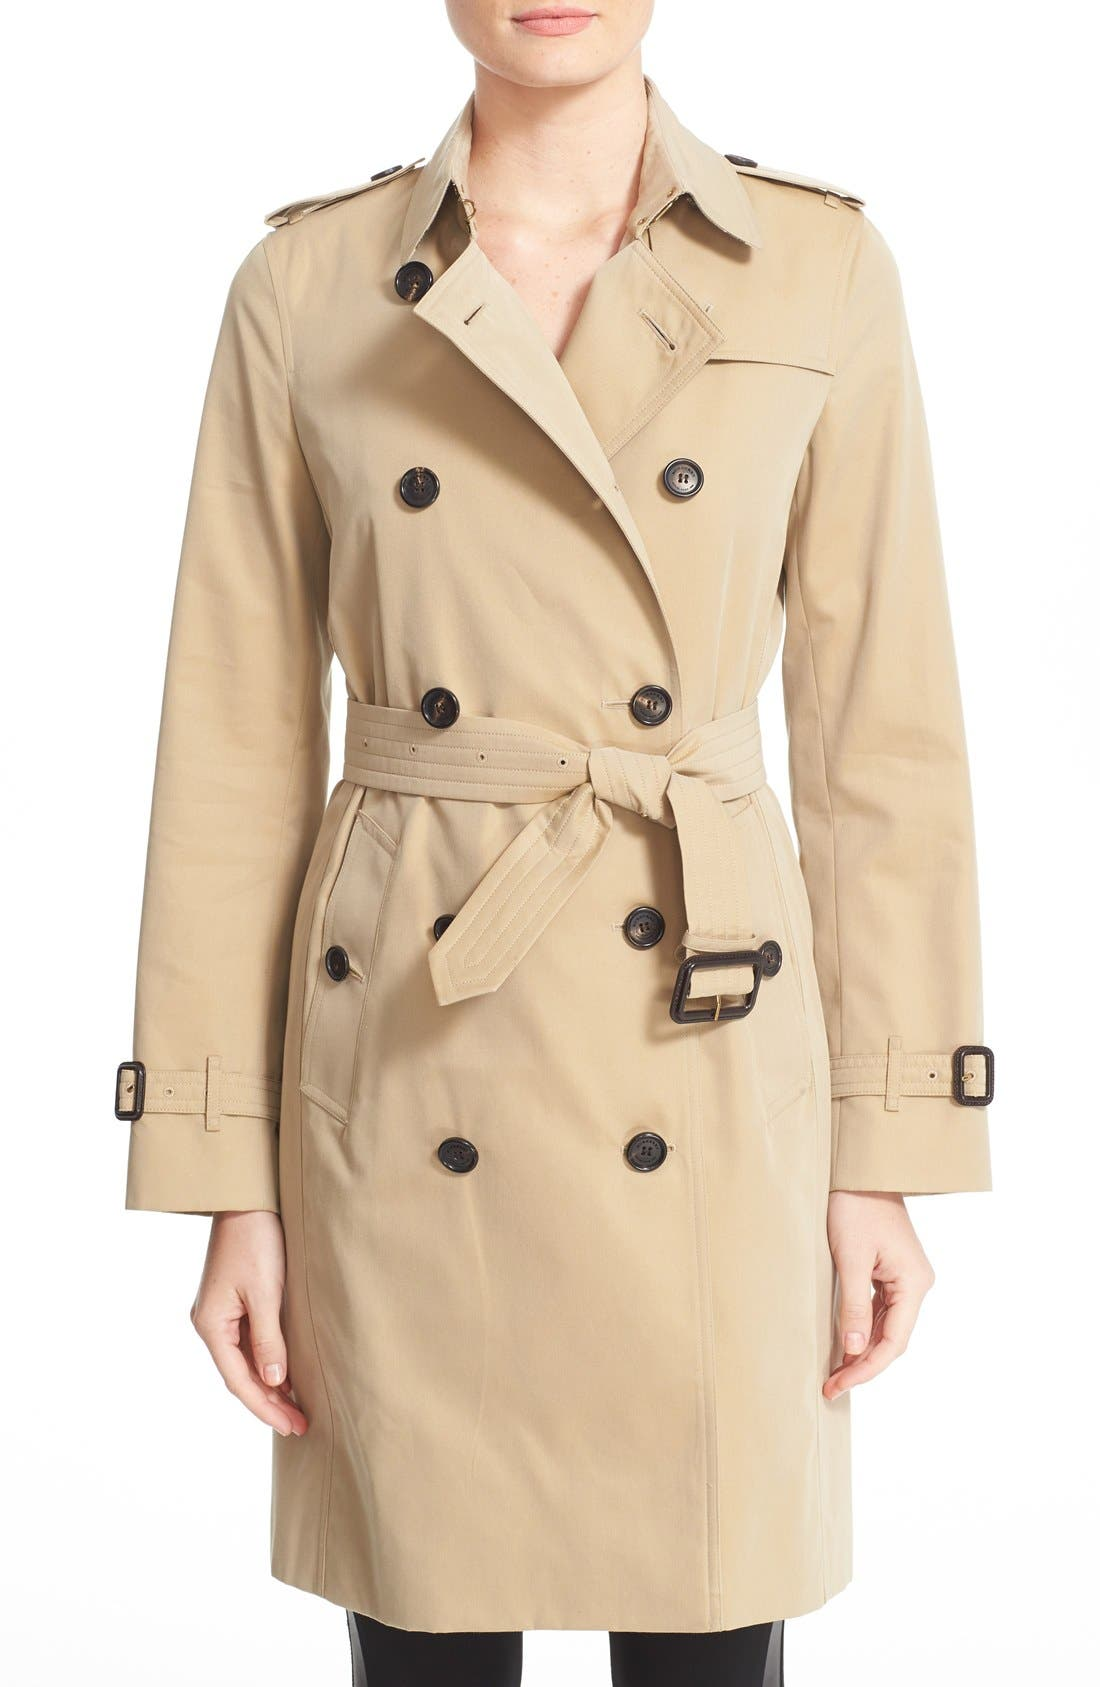 Kensington Long Trench Coat,                         Main,                         color, HONEY